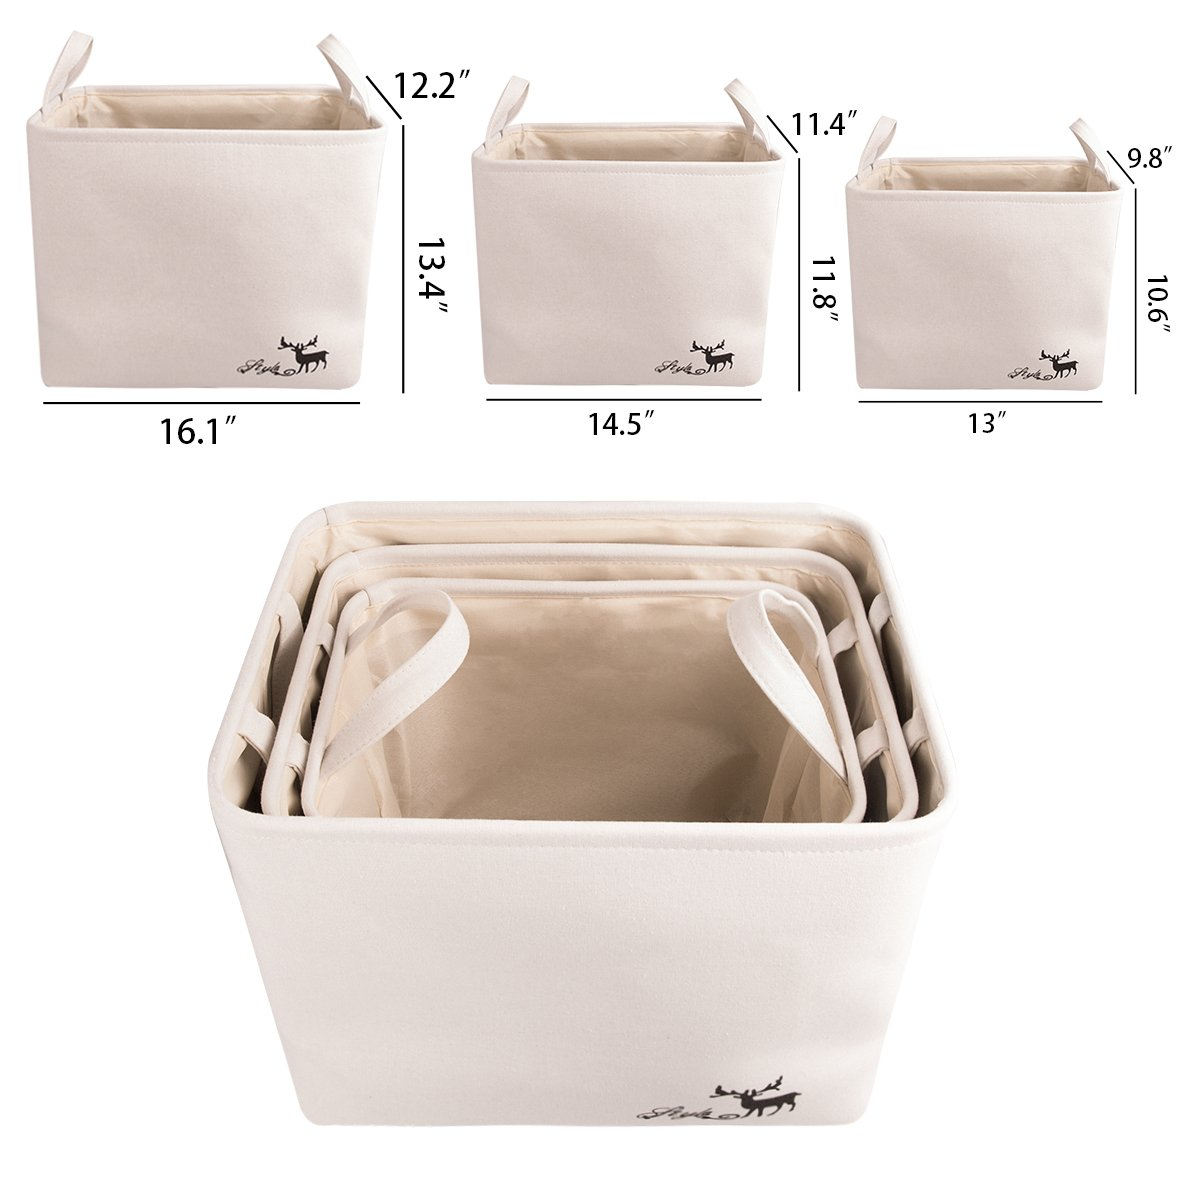 WISHPOOL Collapsible Storage Baskets Bins Foldable Toys Clothes Storage Cube Set 3 Pack with Handles For Home Laundry Closet